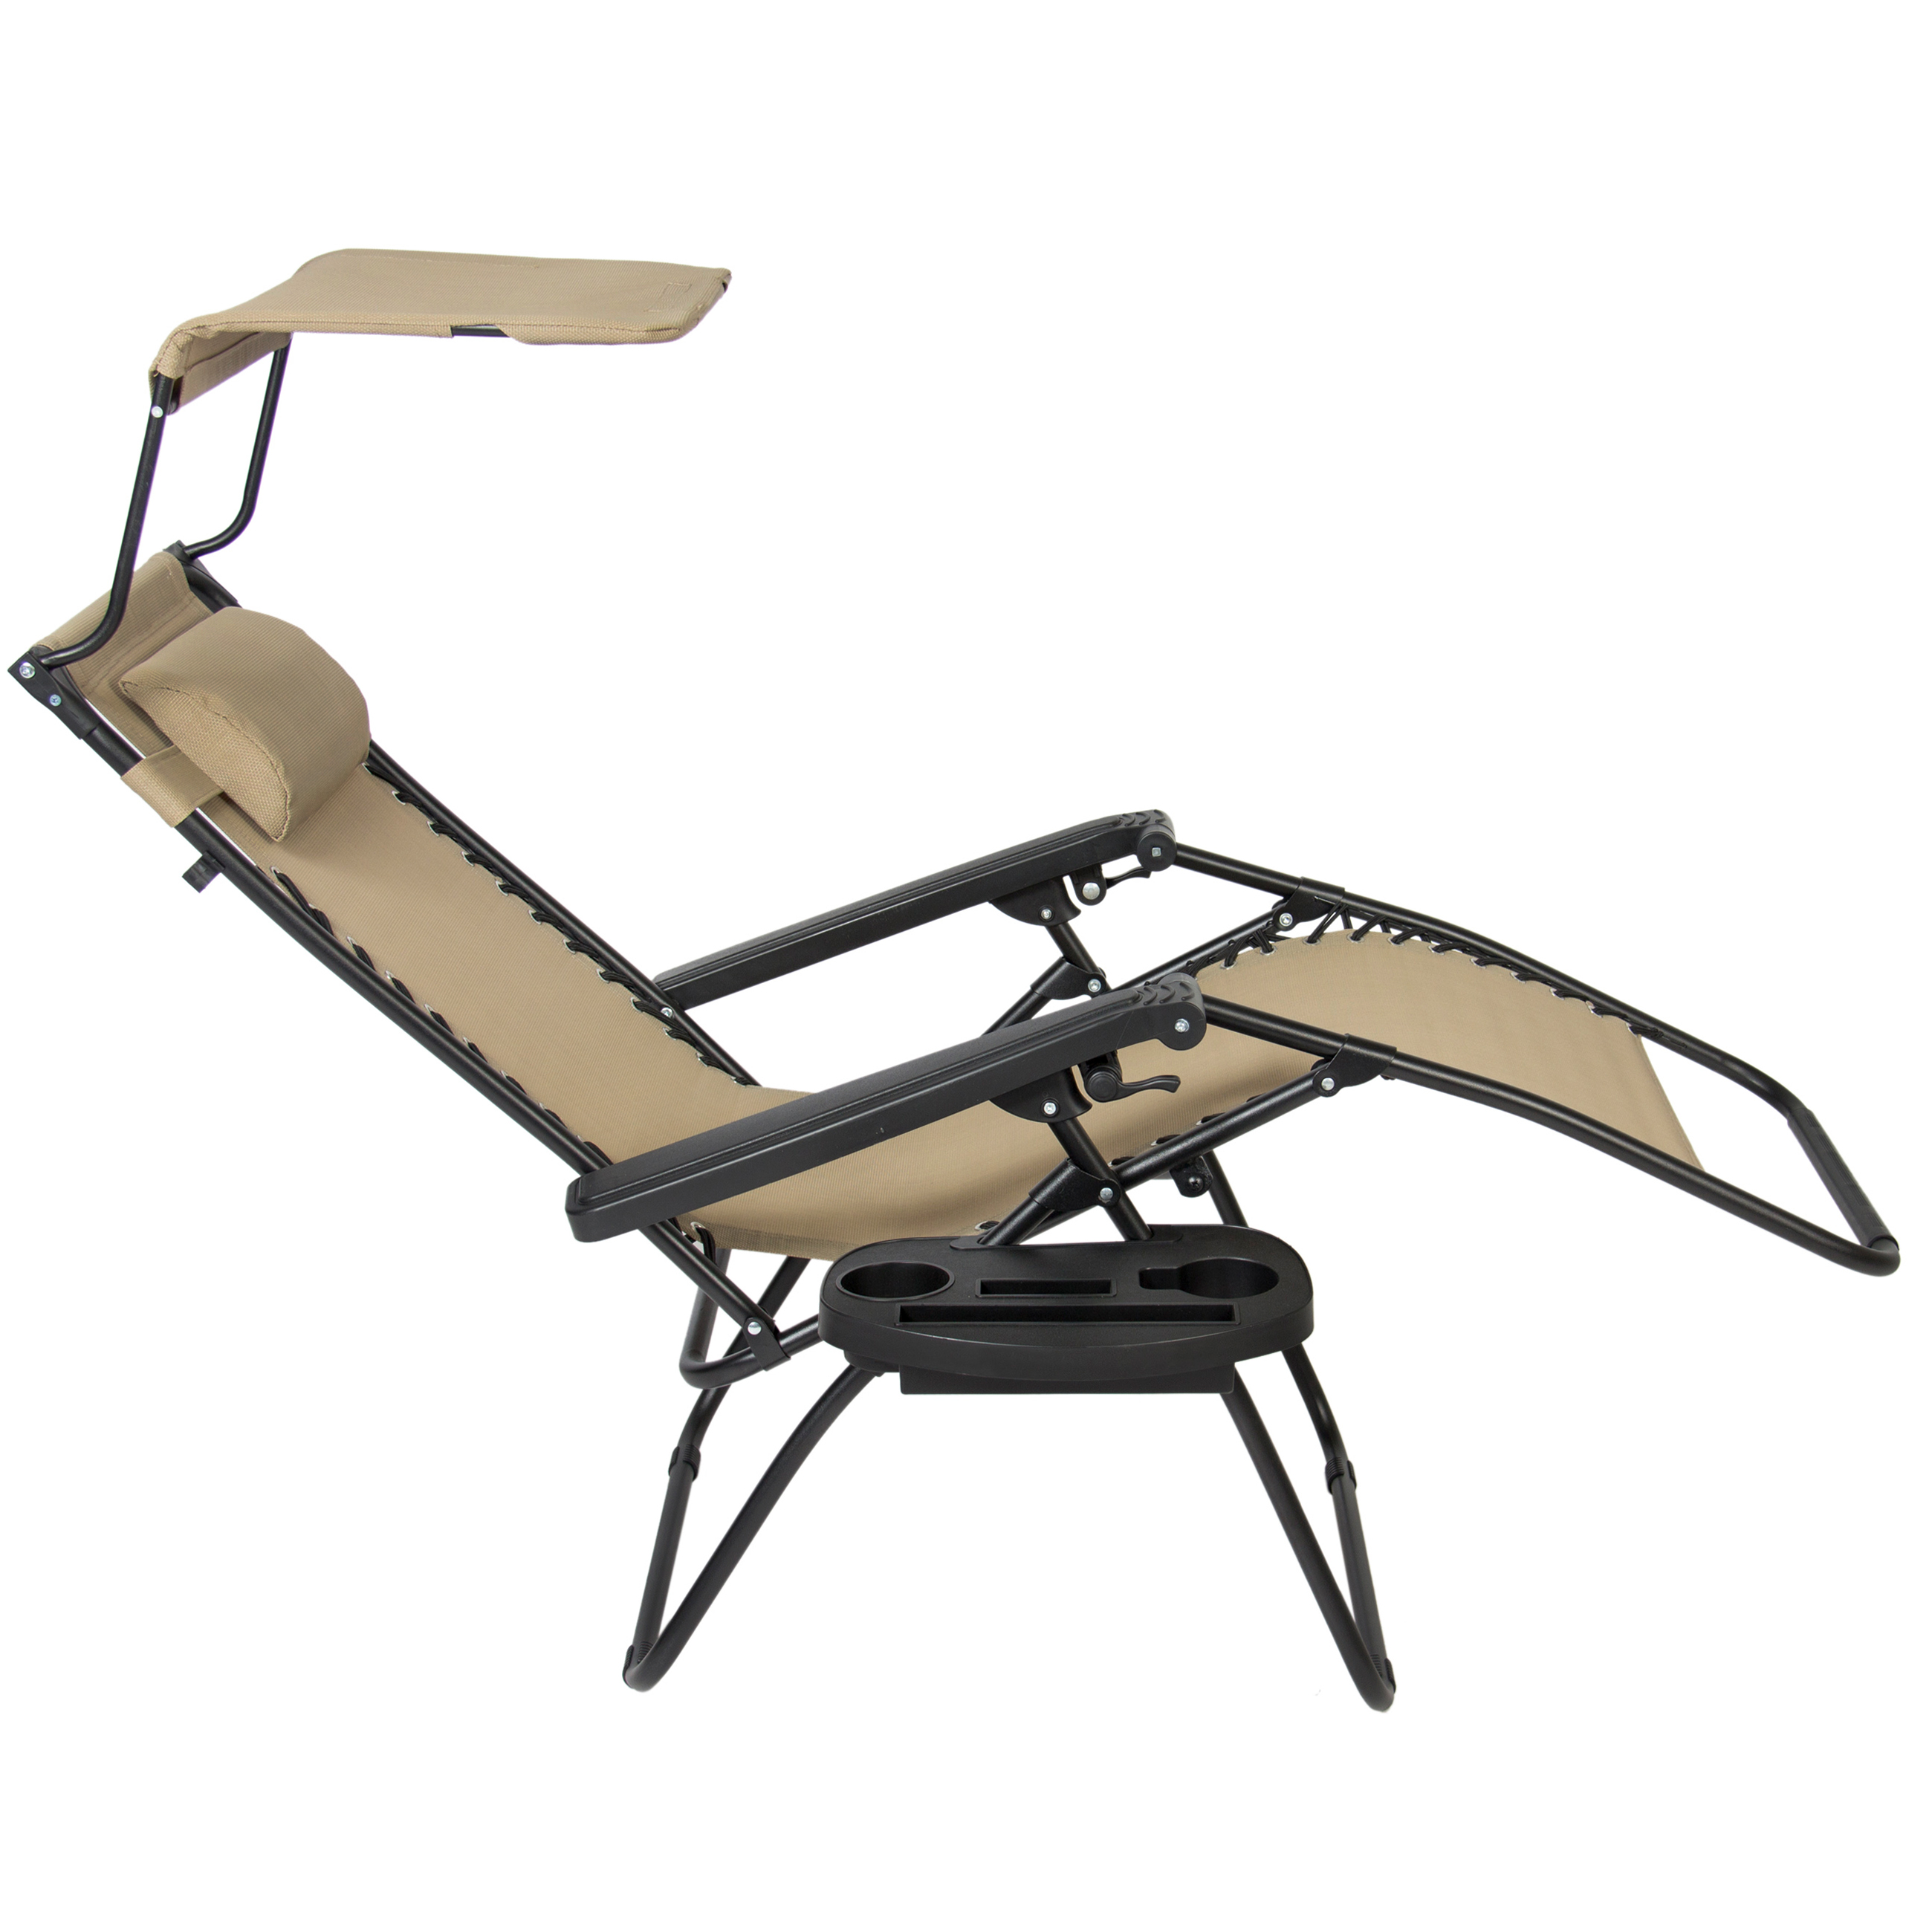 Fold Up Lounge Chair Awesome Fold Up Lounge Chair Garden